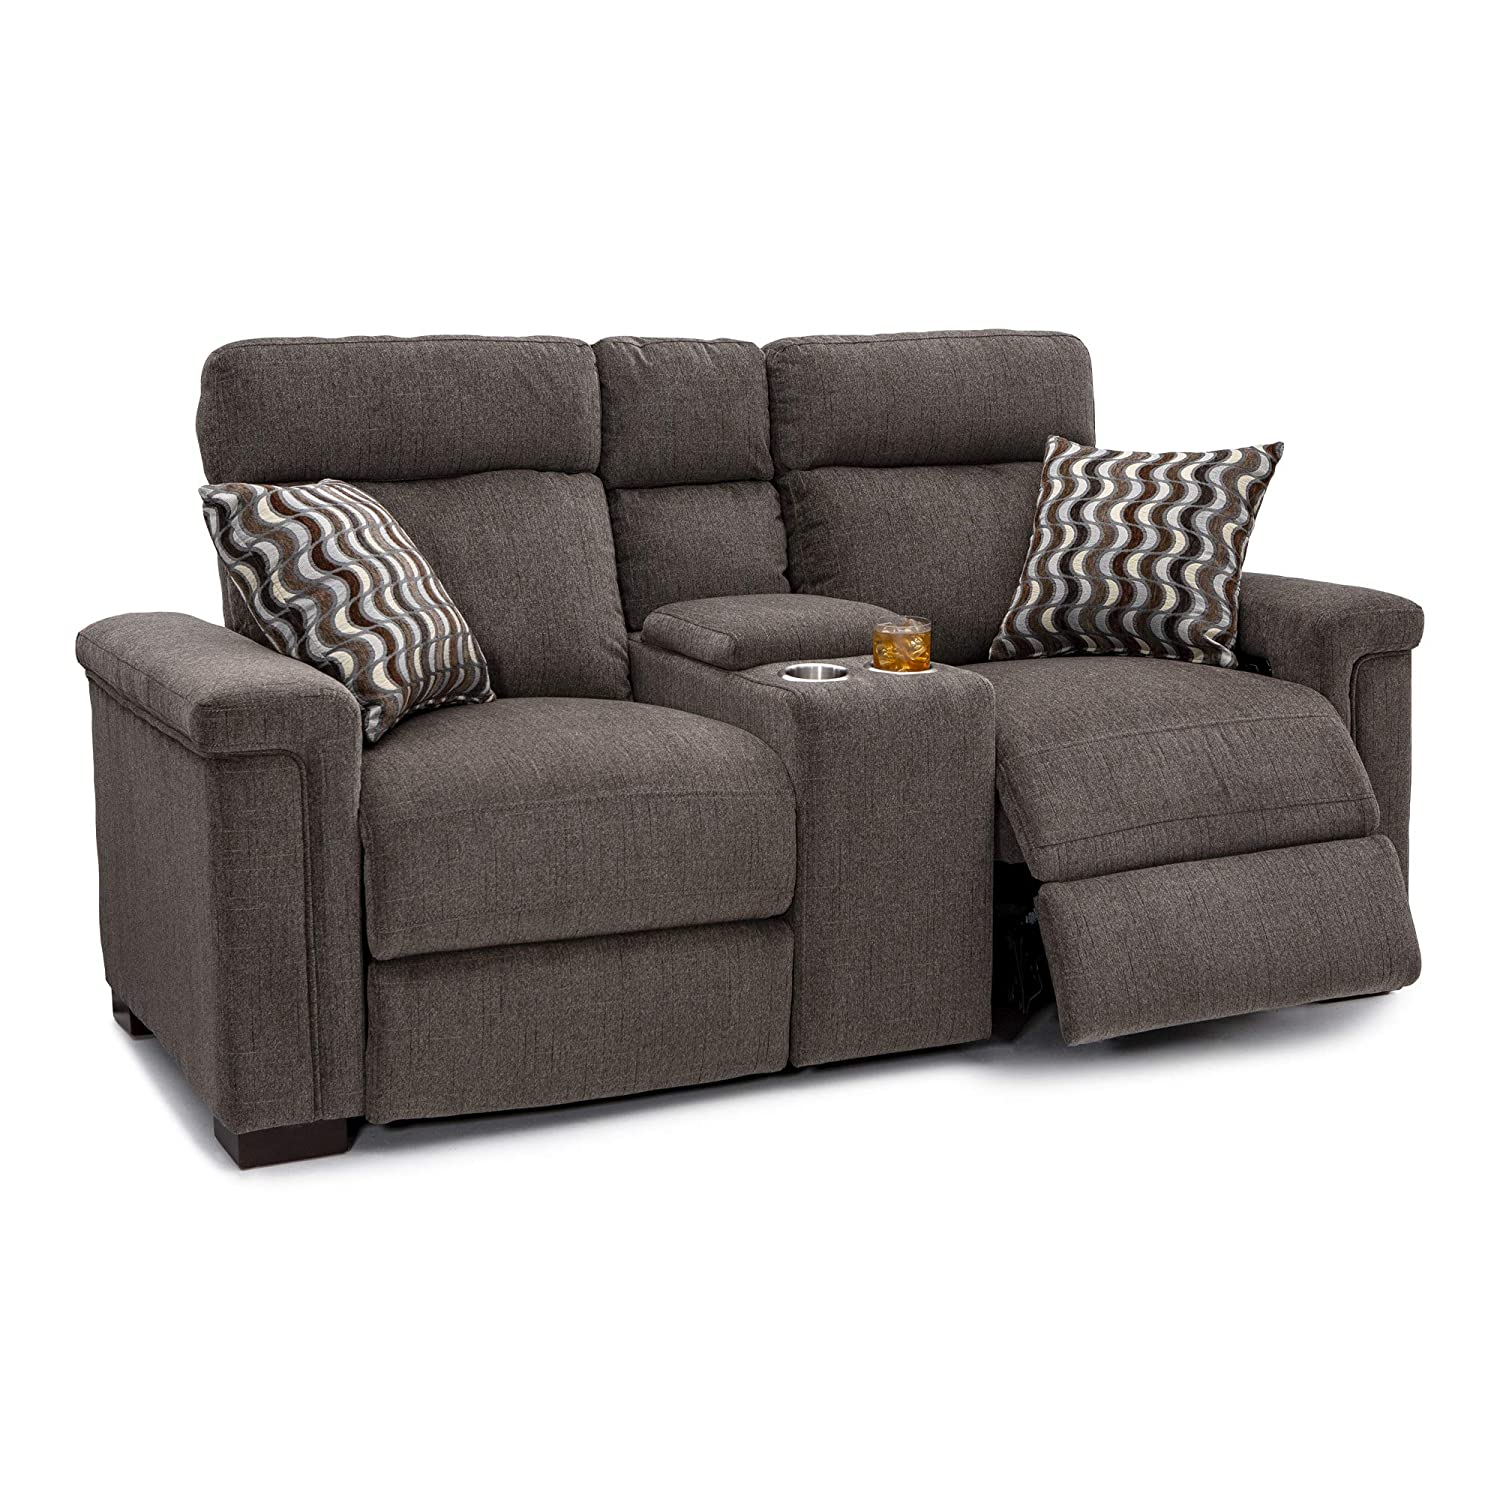 Amazing Seatcraft Hawke Home Theater Seating Performance Fabric Power Recline Loveseat With Adjustable Powered Headrests Center Storage Console With Cup Forskolin Free Trial Chair Design Images Forskolin Free Trialorg